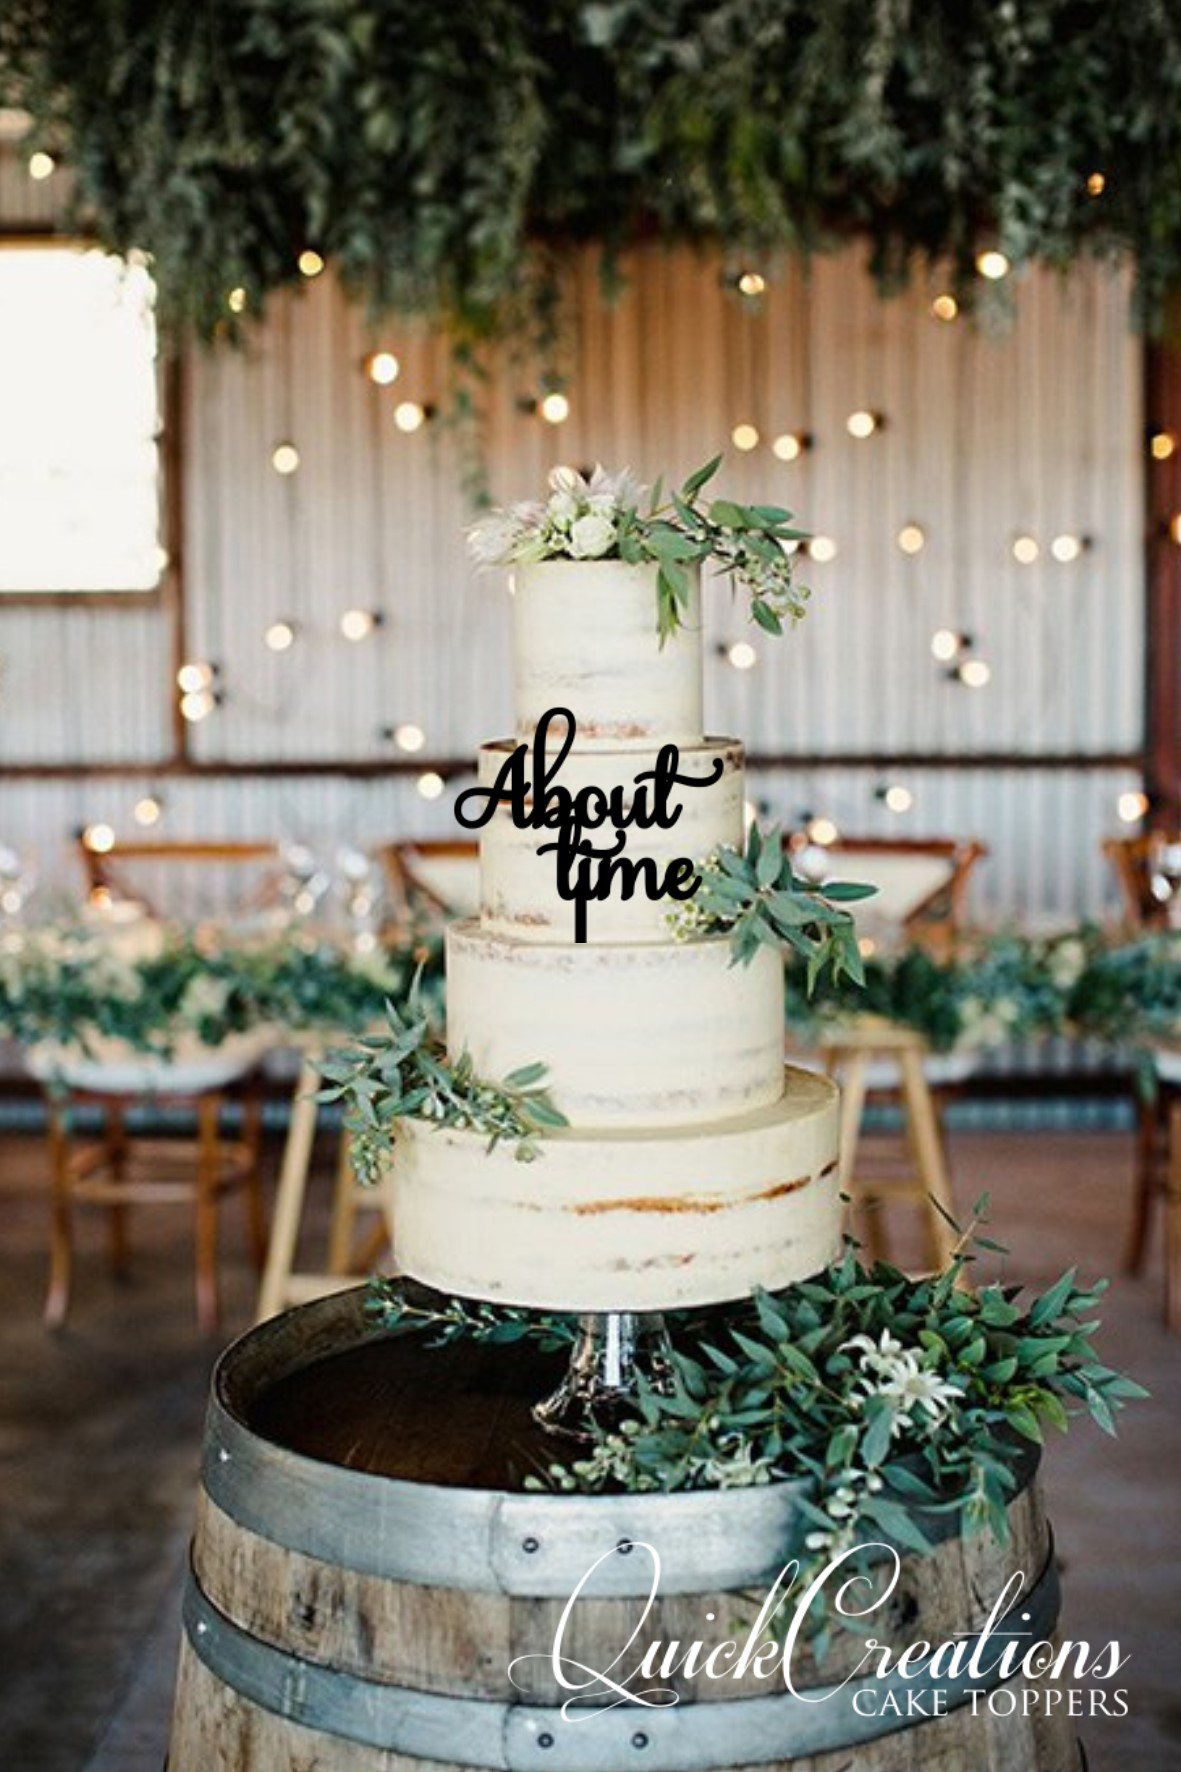 Quick Creations Cake Topper - About Time